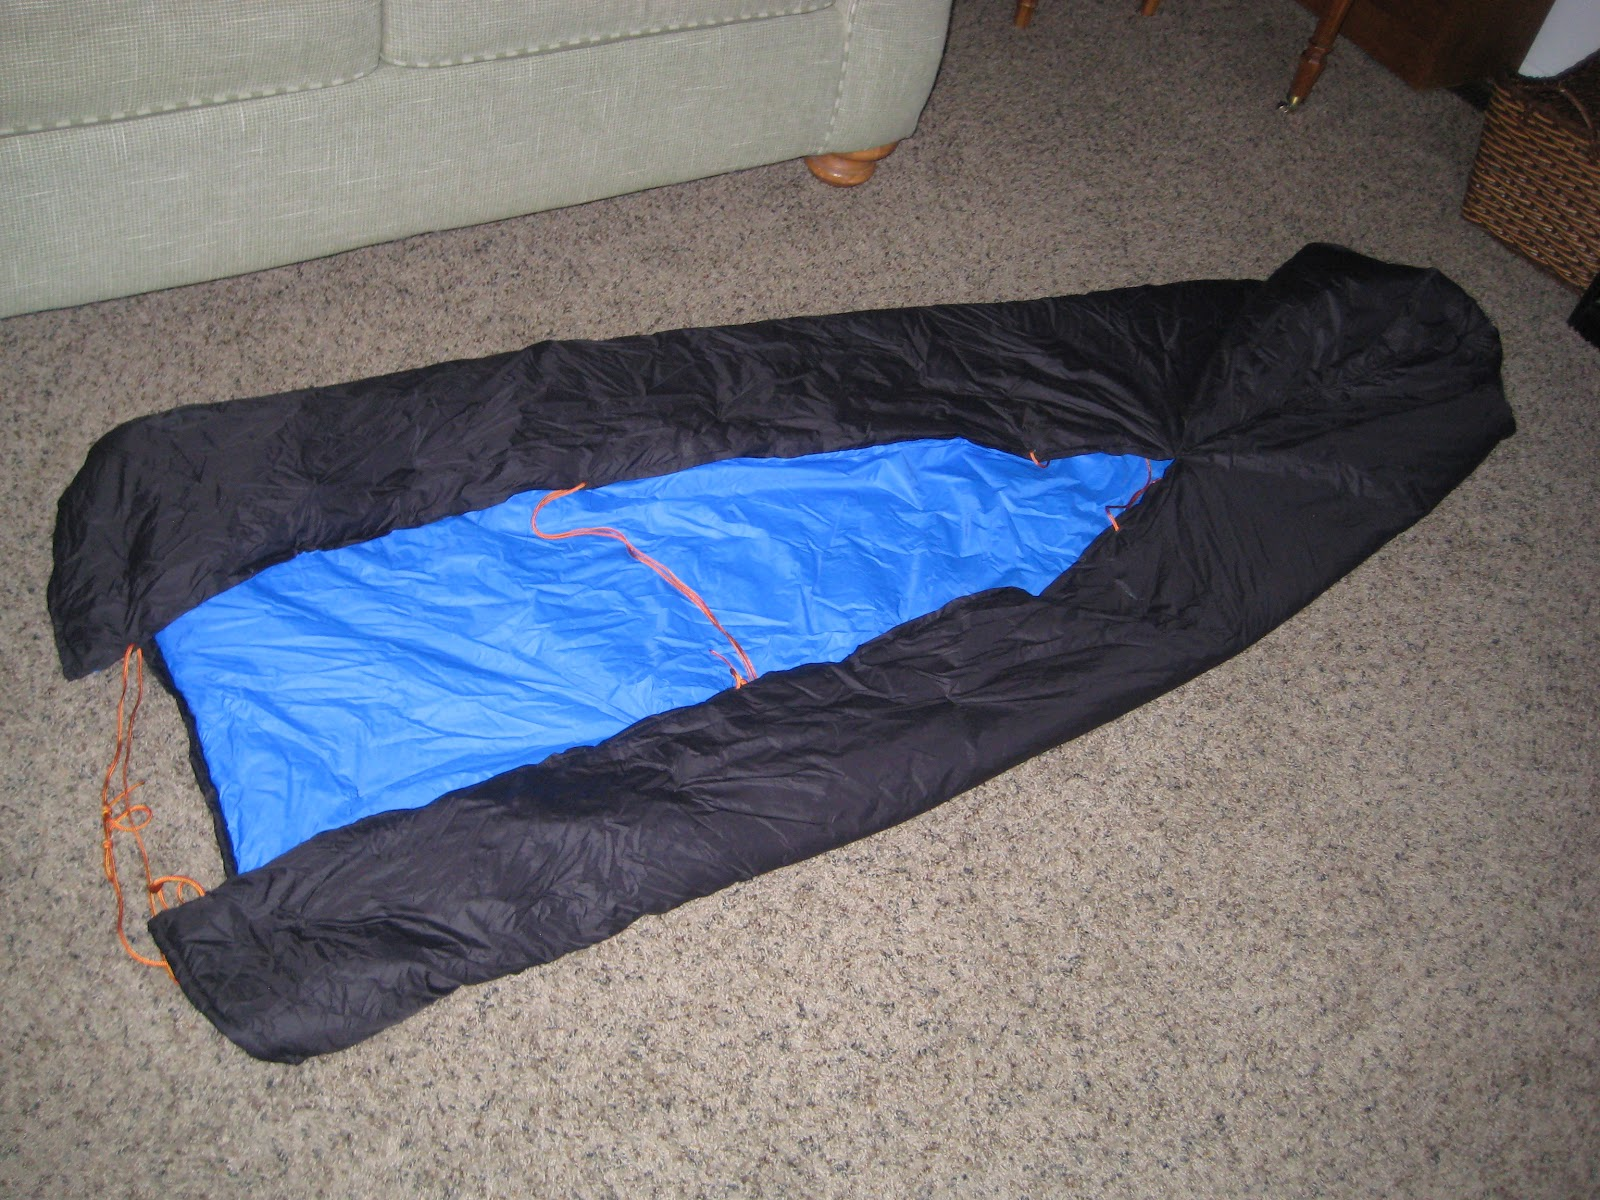 gear 30 sleeping bag vs quilt